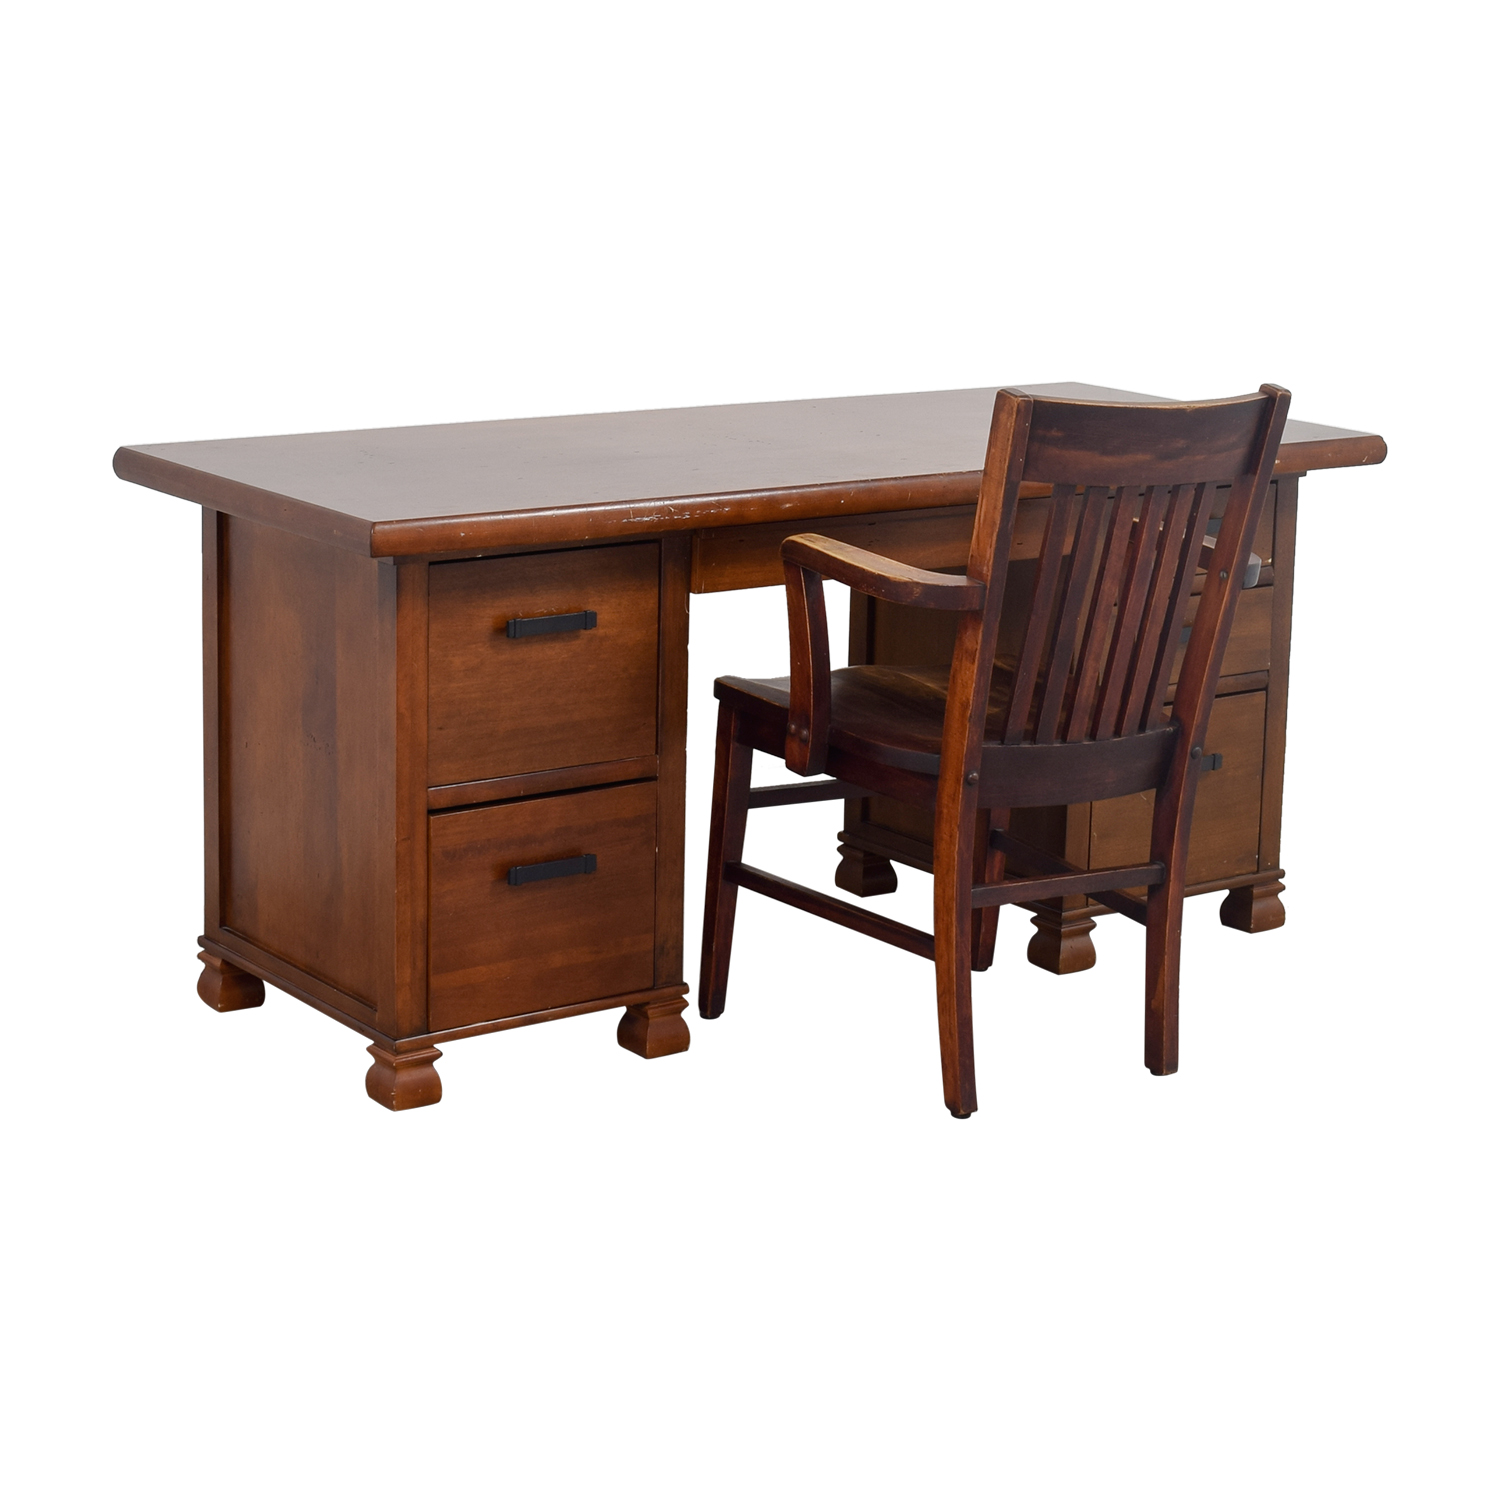 buy Pottery Barn Wooden Cherry Desk with Chair Pottery Barn Home Office Desks